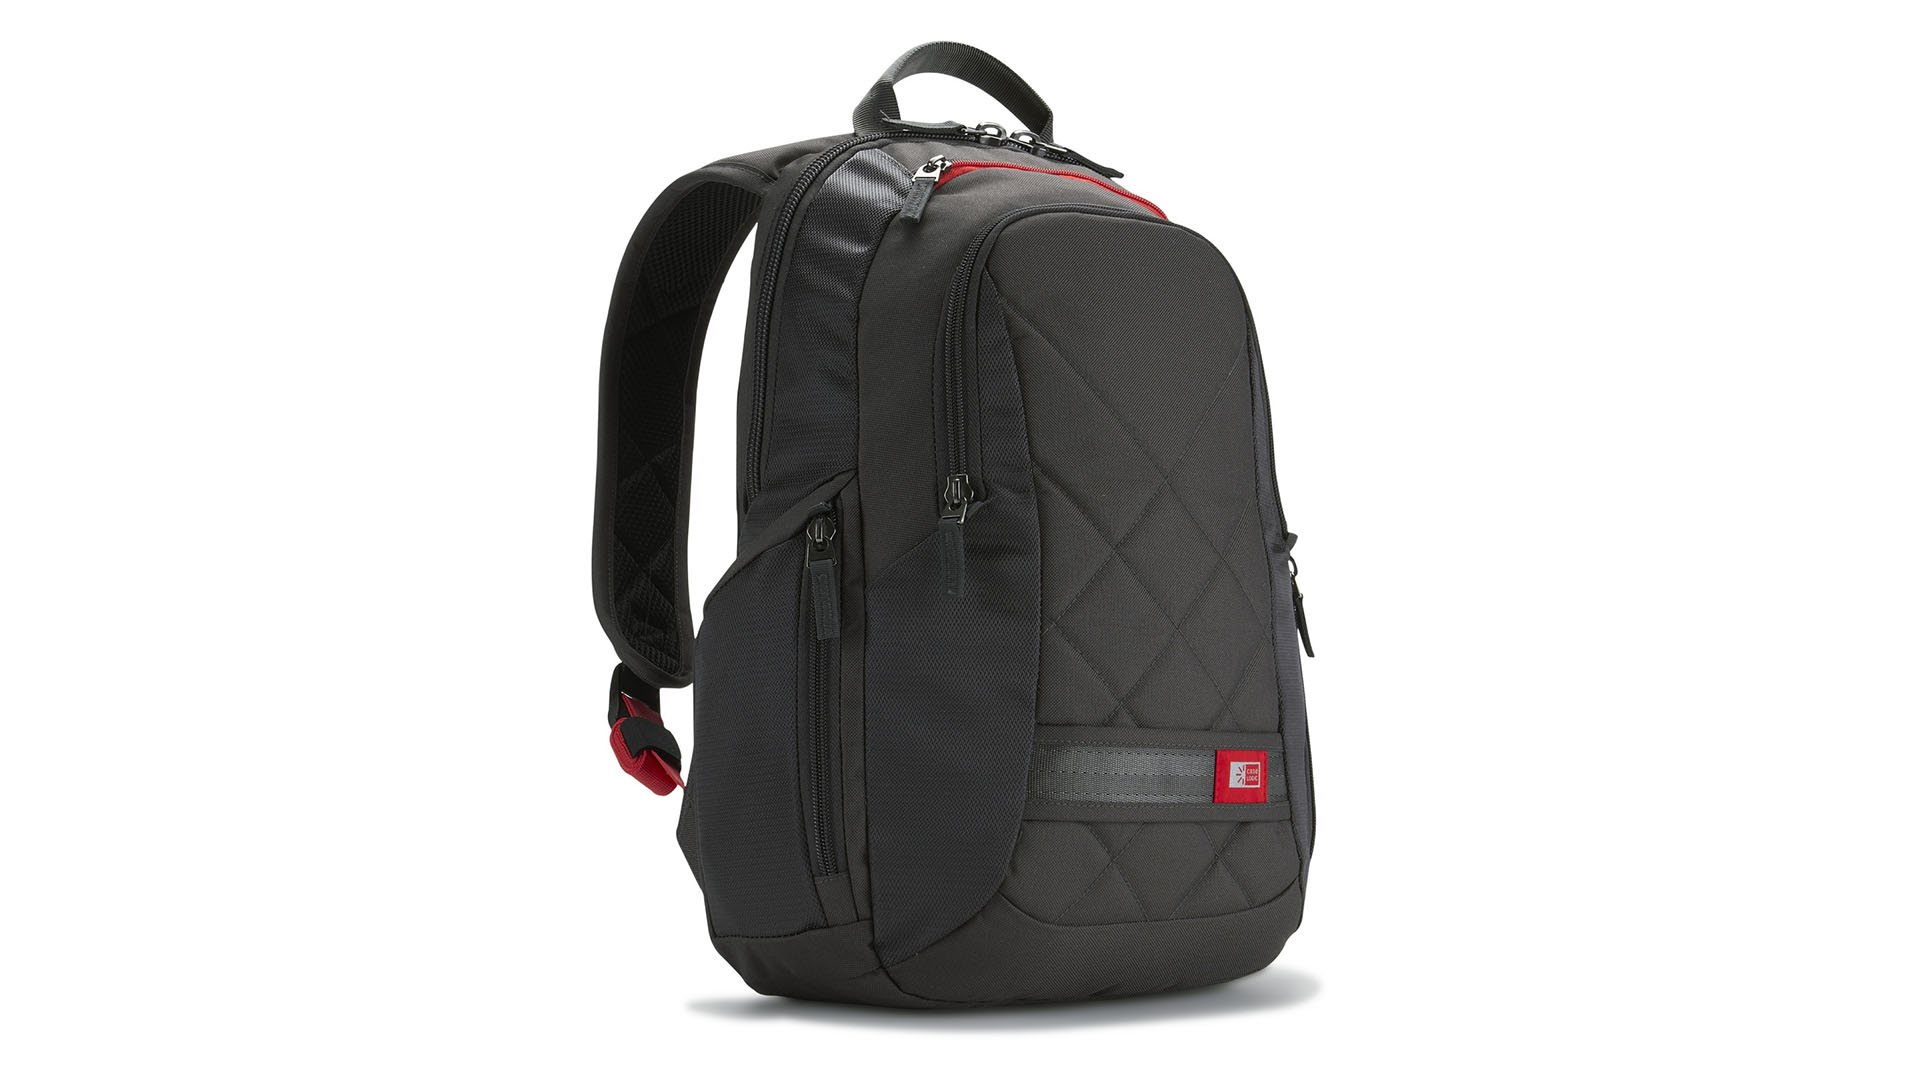 14 Inch Laptop Backpack WSZvpyA0